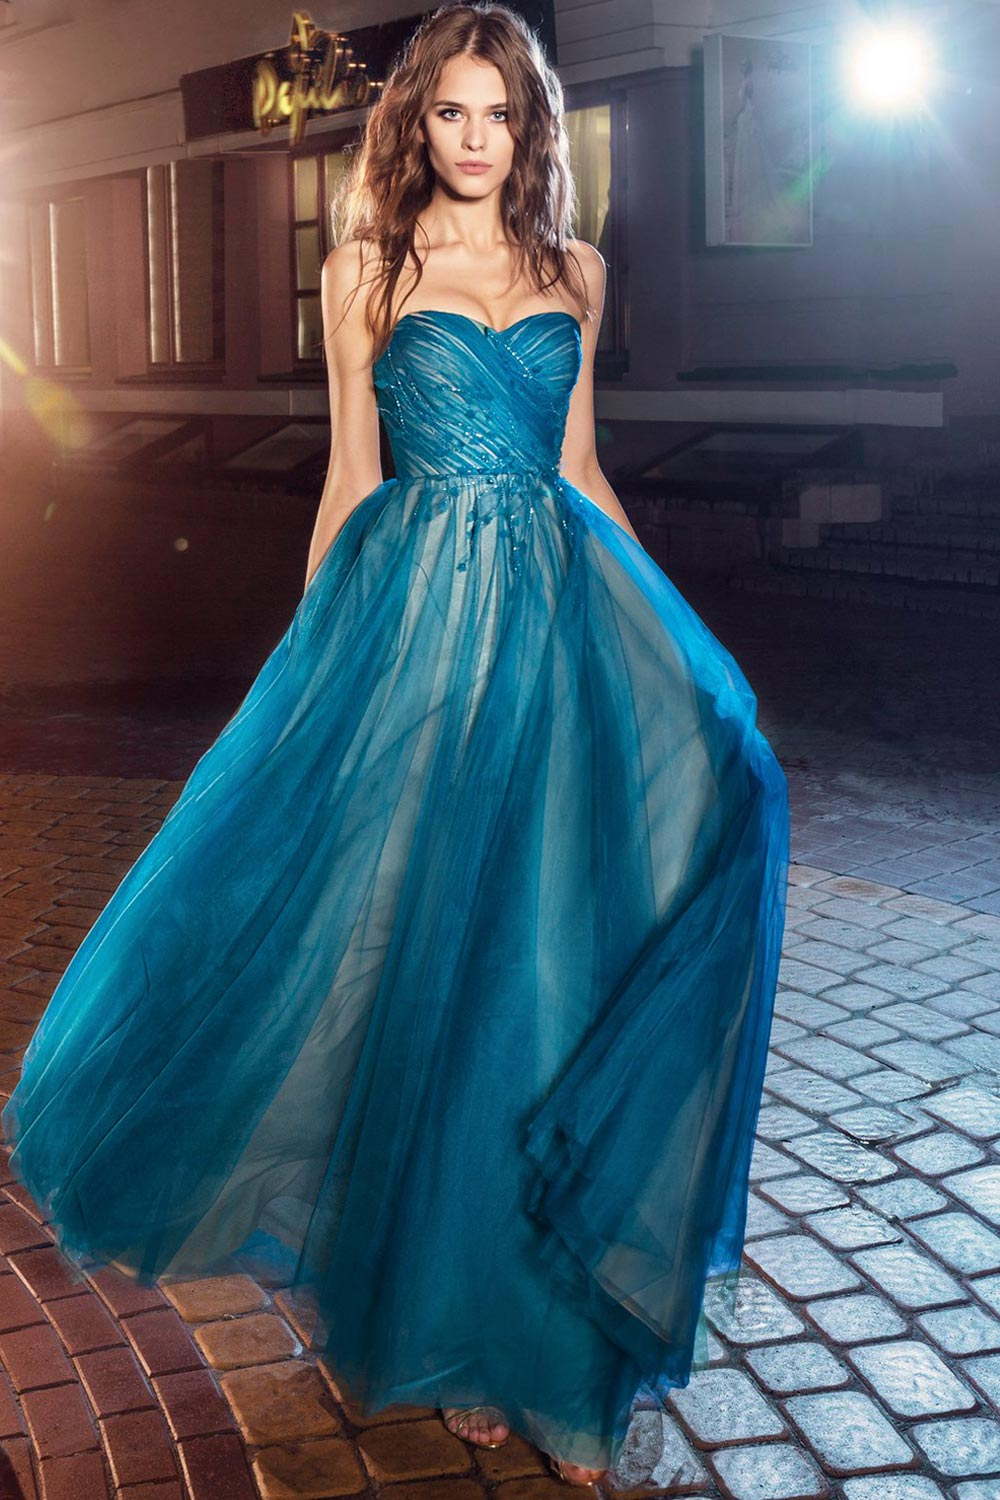 2019 prom, strapless A-line evening dress with maxi pleated tulle skirt and flower embroidery, available in cornflower-blue, nude, salmon, turquoise, sky-blue, cool blue, grey, crimson, red, coral, ivory, green and ivory-salmon